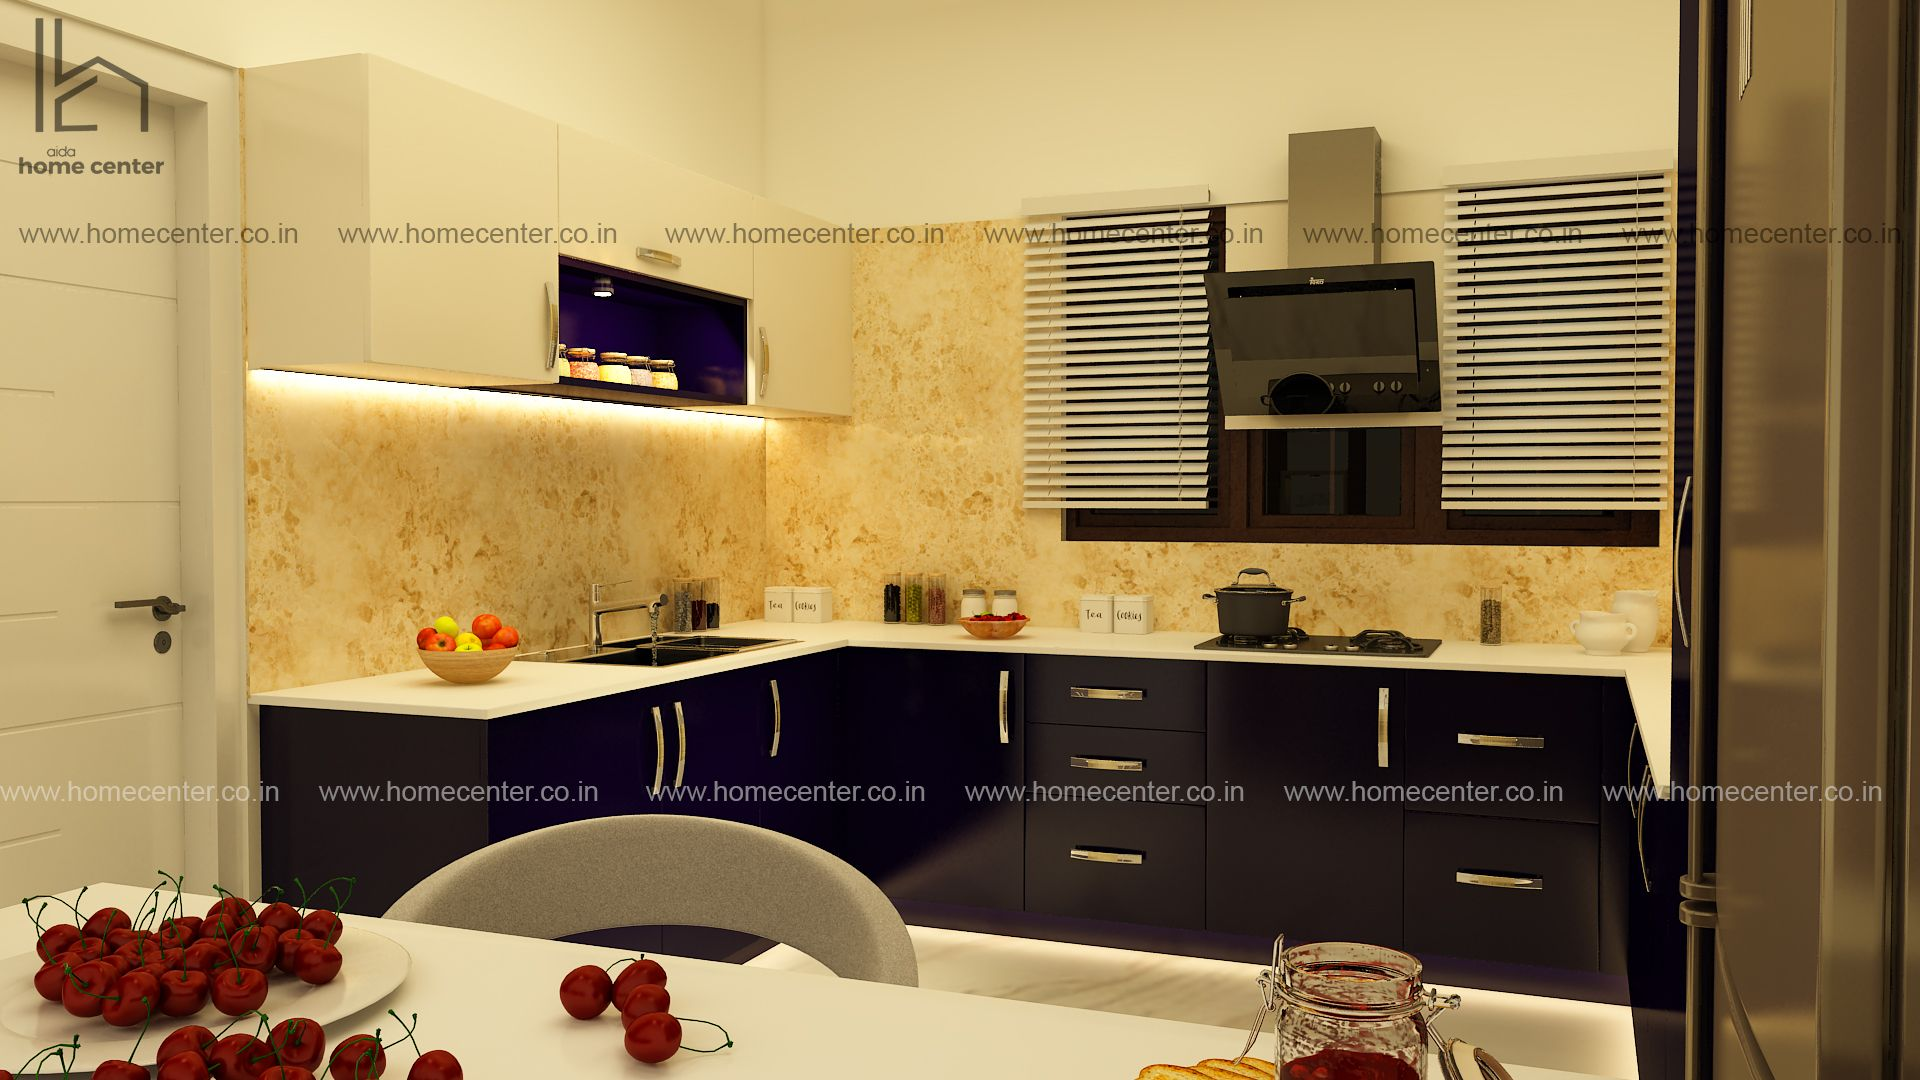 Best Interior Designers In Kottayam Interior Design Companies